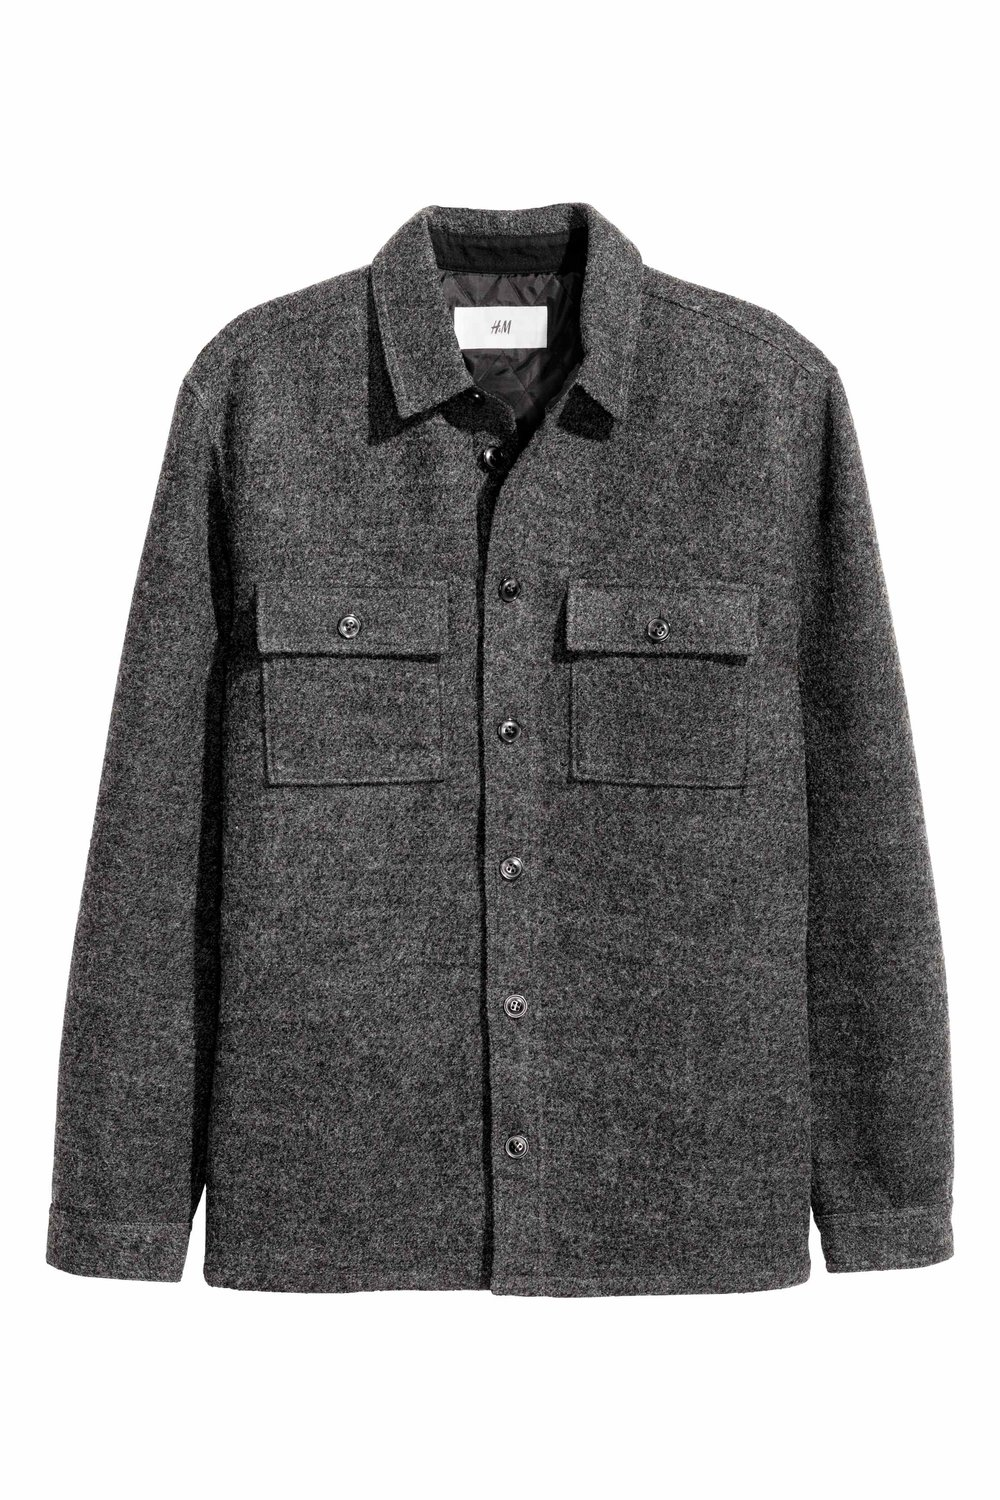 Wool-blend shirt jacket, £29.99 ( hm.com )